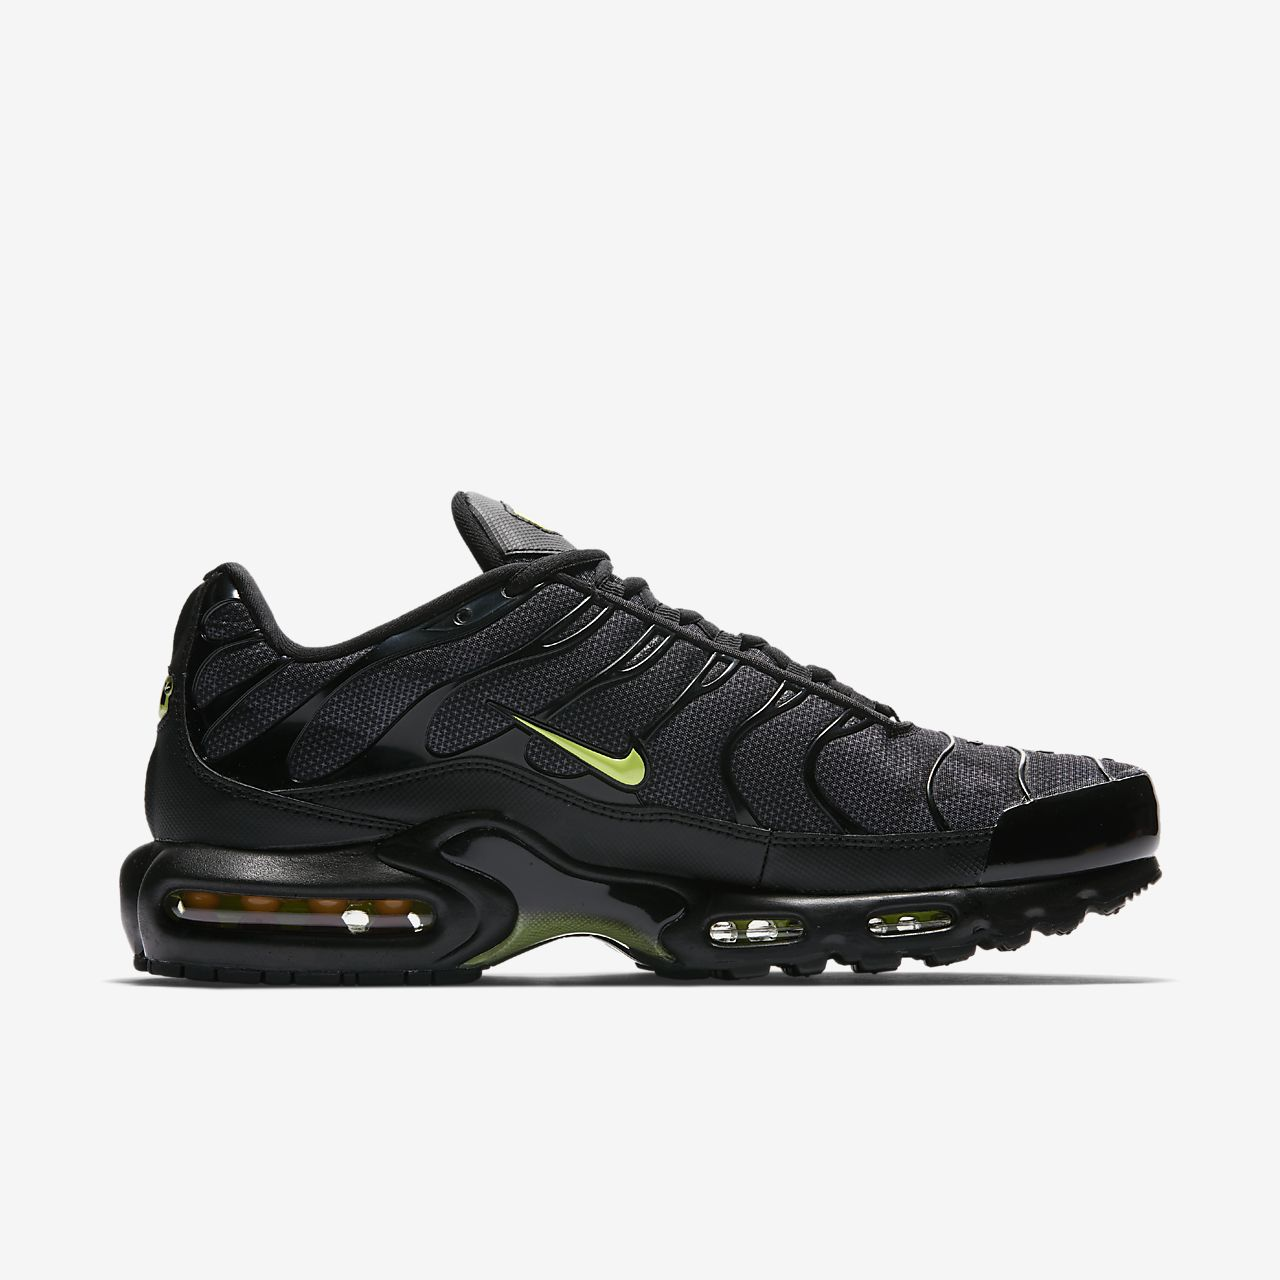 best service 2e83b ba3b3 Nike Air Max Plus SE